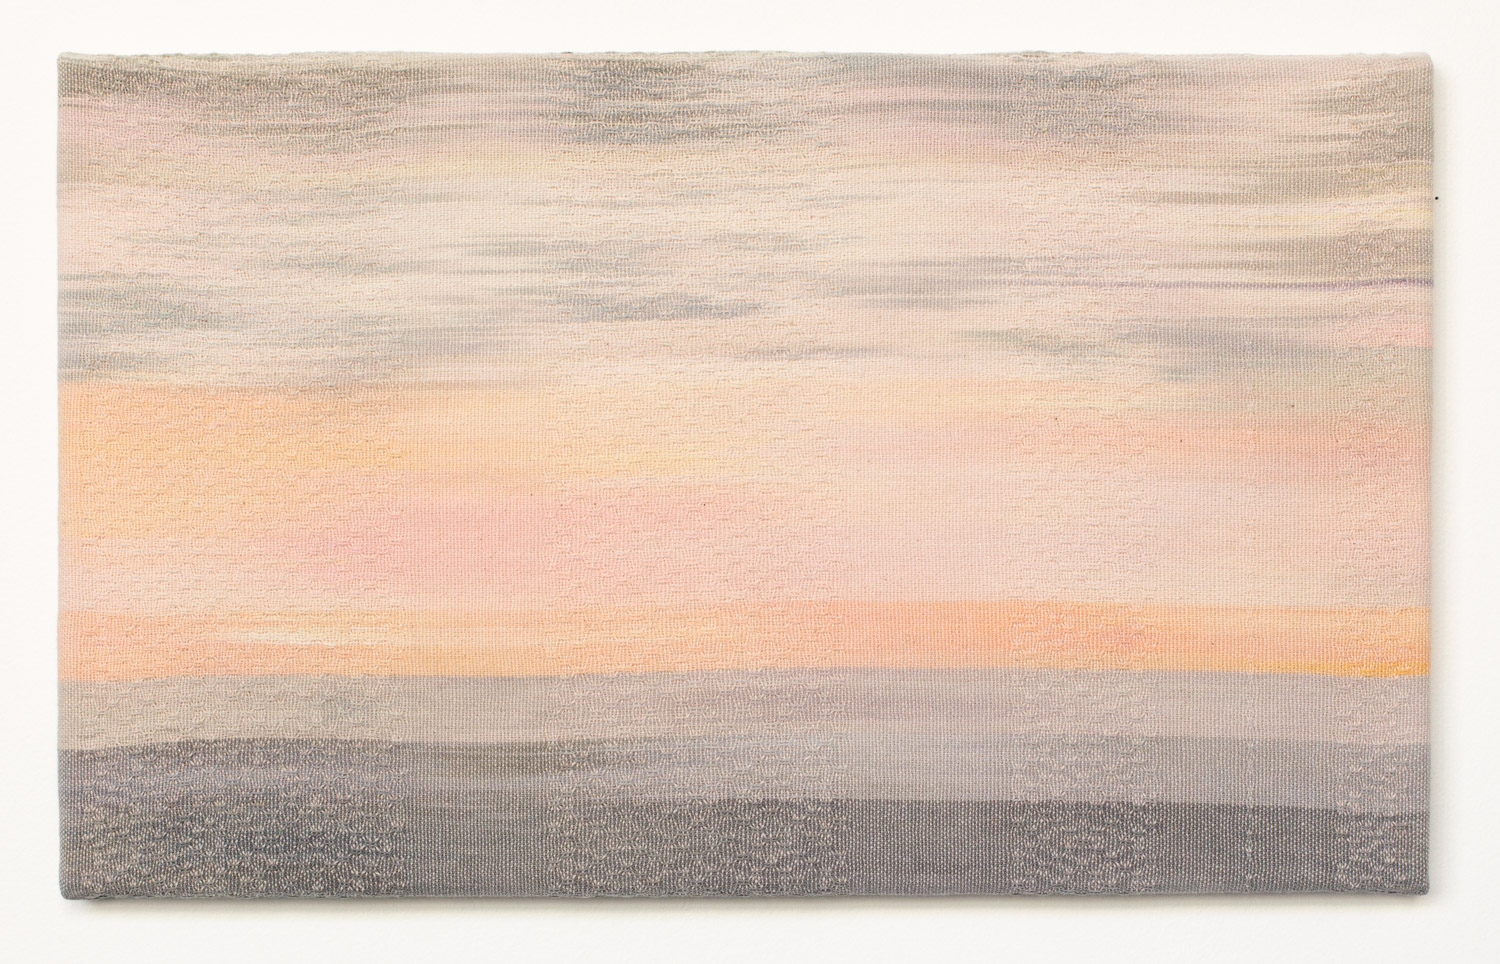 Untitled (sunset), 2018